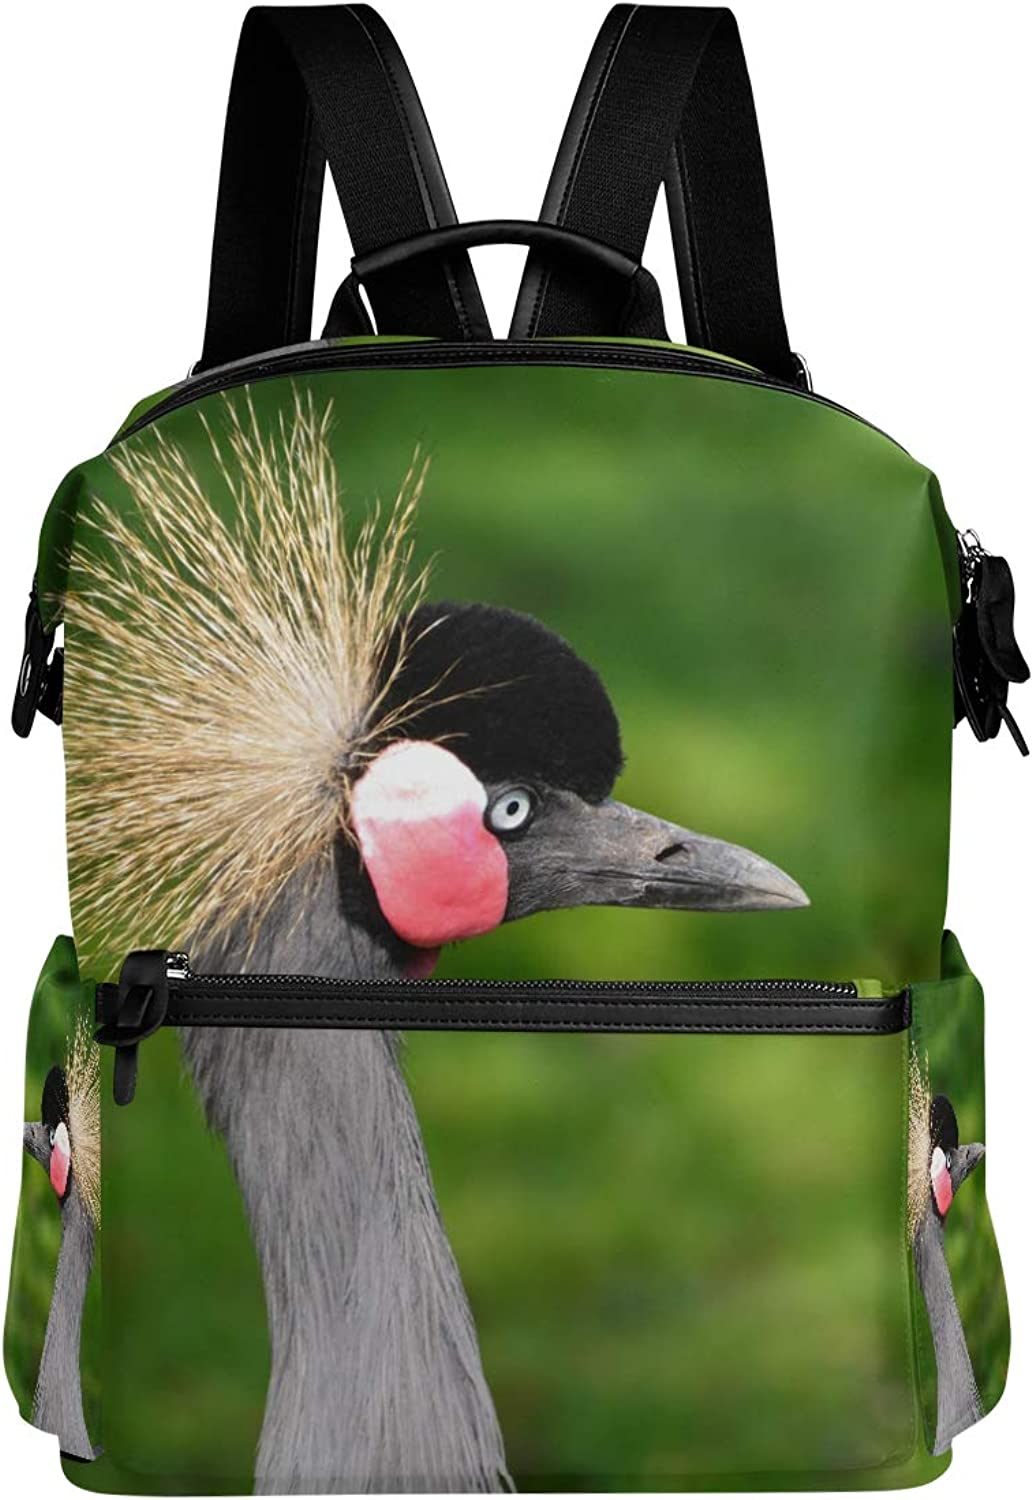 MONTOJ Grey Crowned Crane Leather Travel Bag Campus Backpack